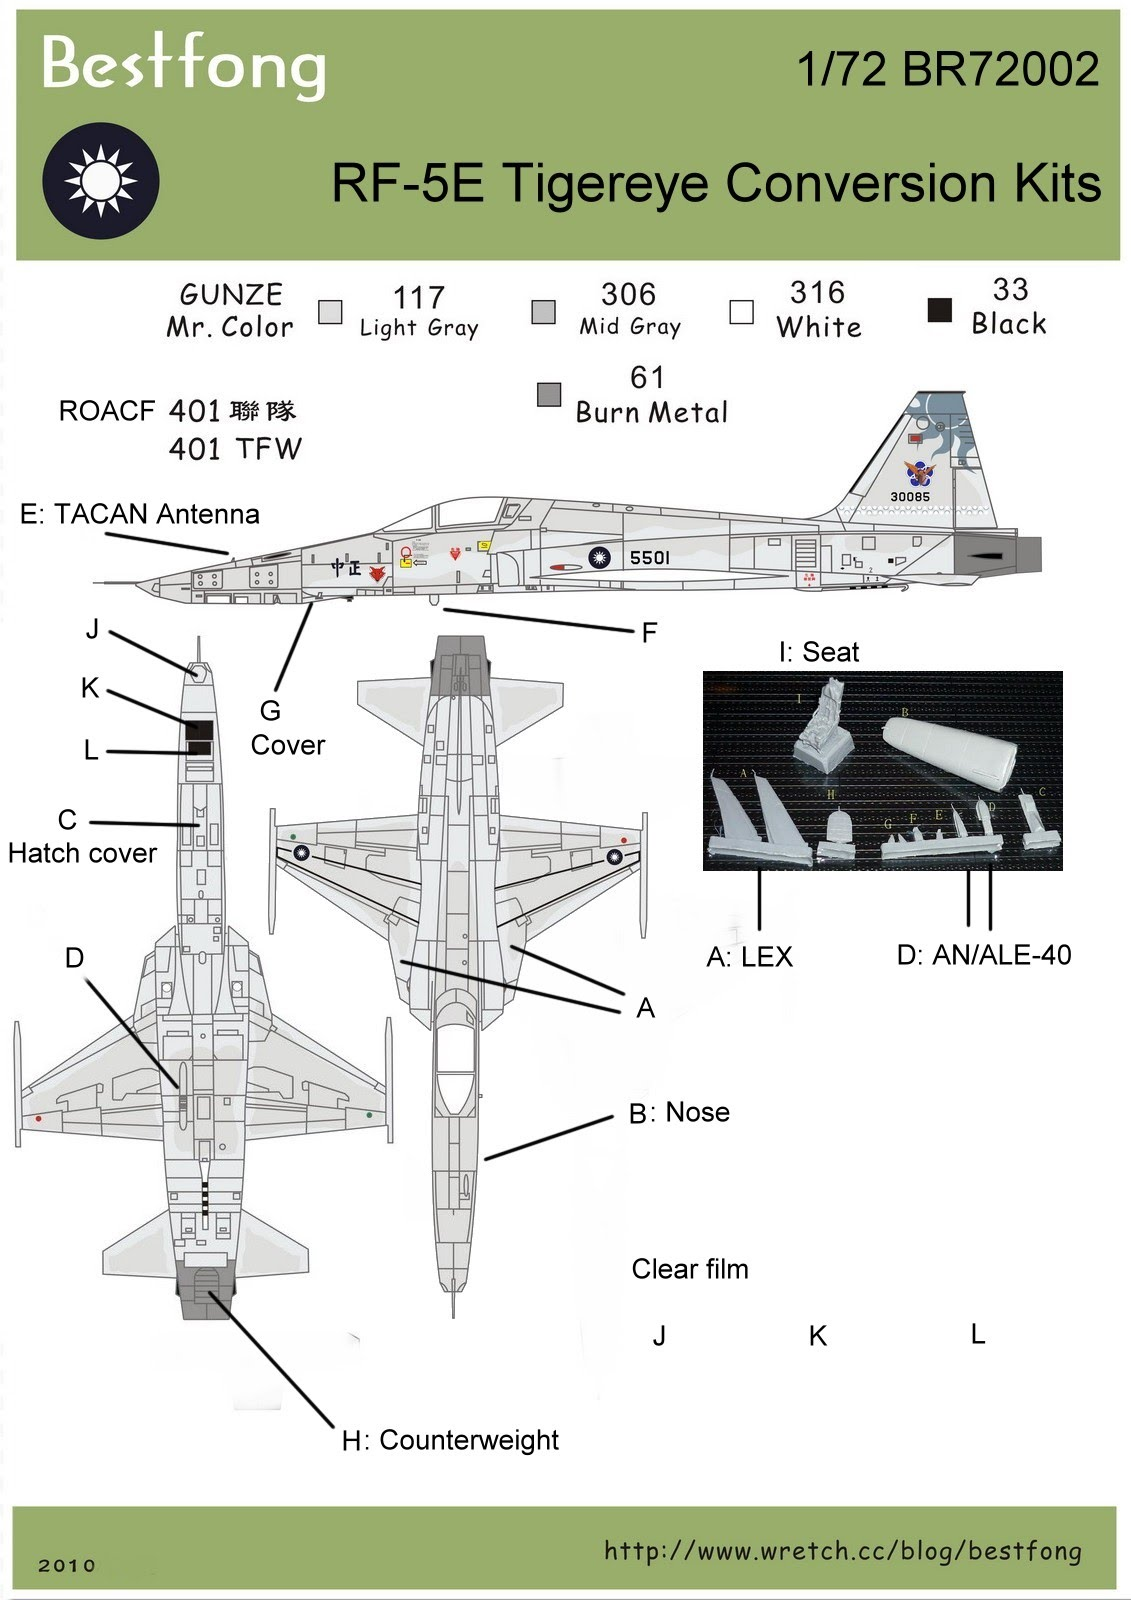 Berita Dunia Model Kit... - Page 2 72BR002RF-5E